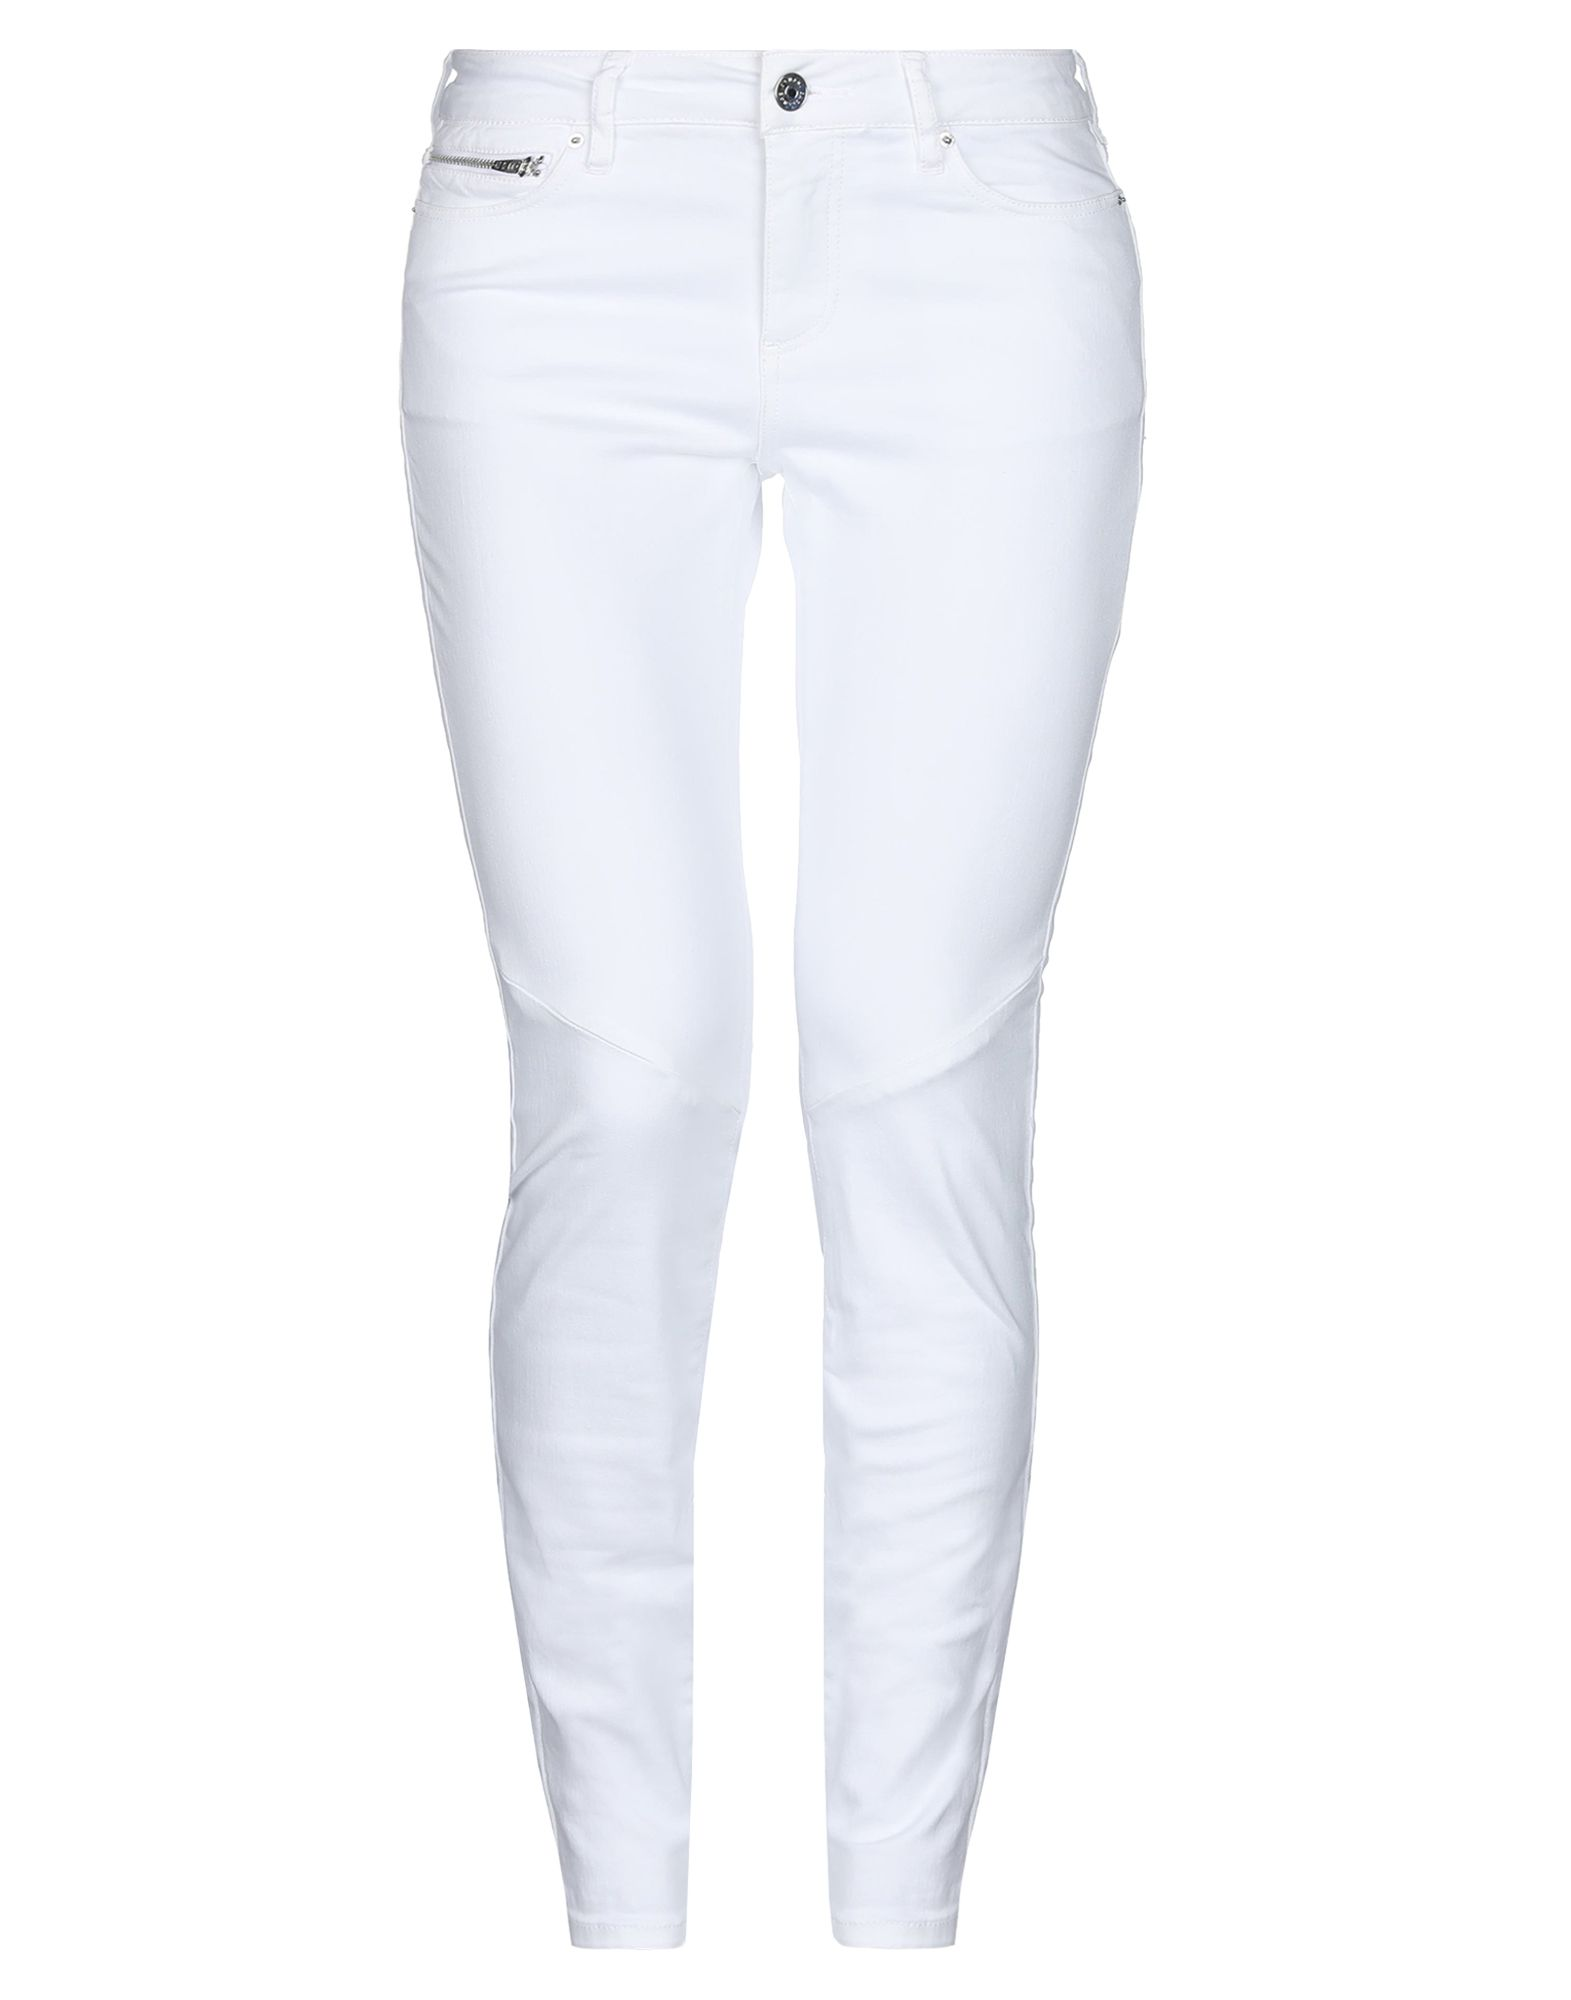 ARMANI EXCHANGE Denim pants - Item 42764831